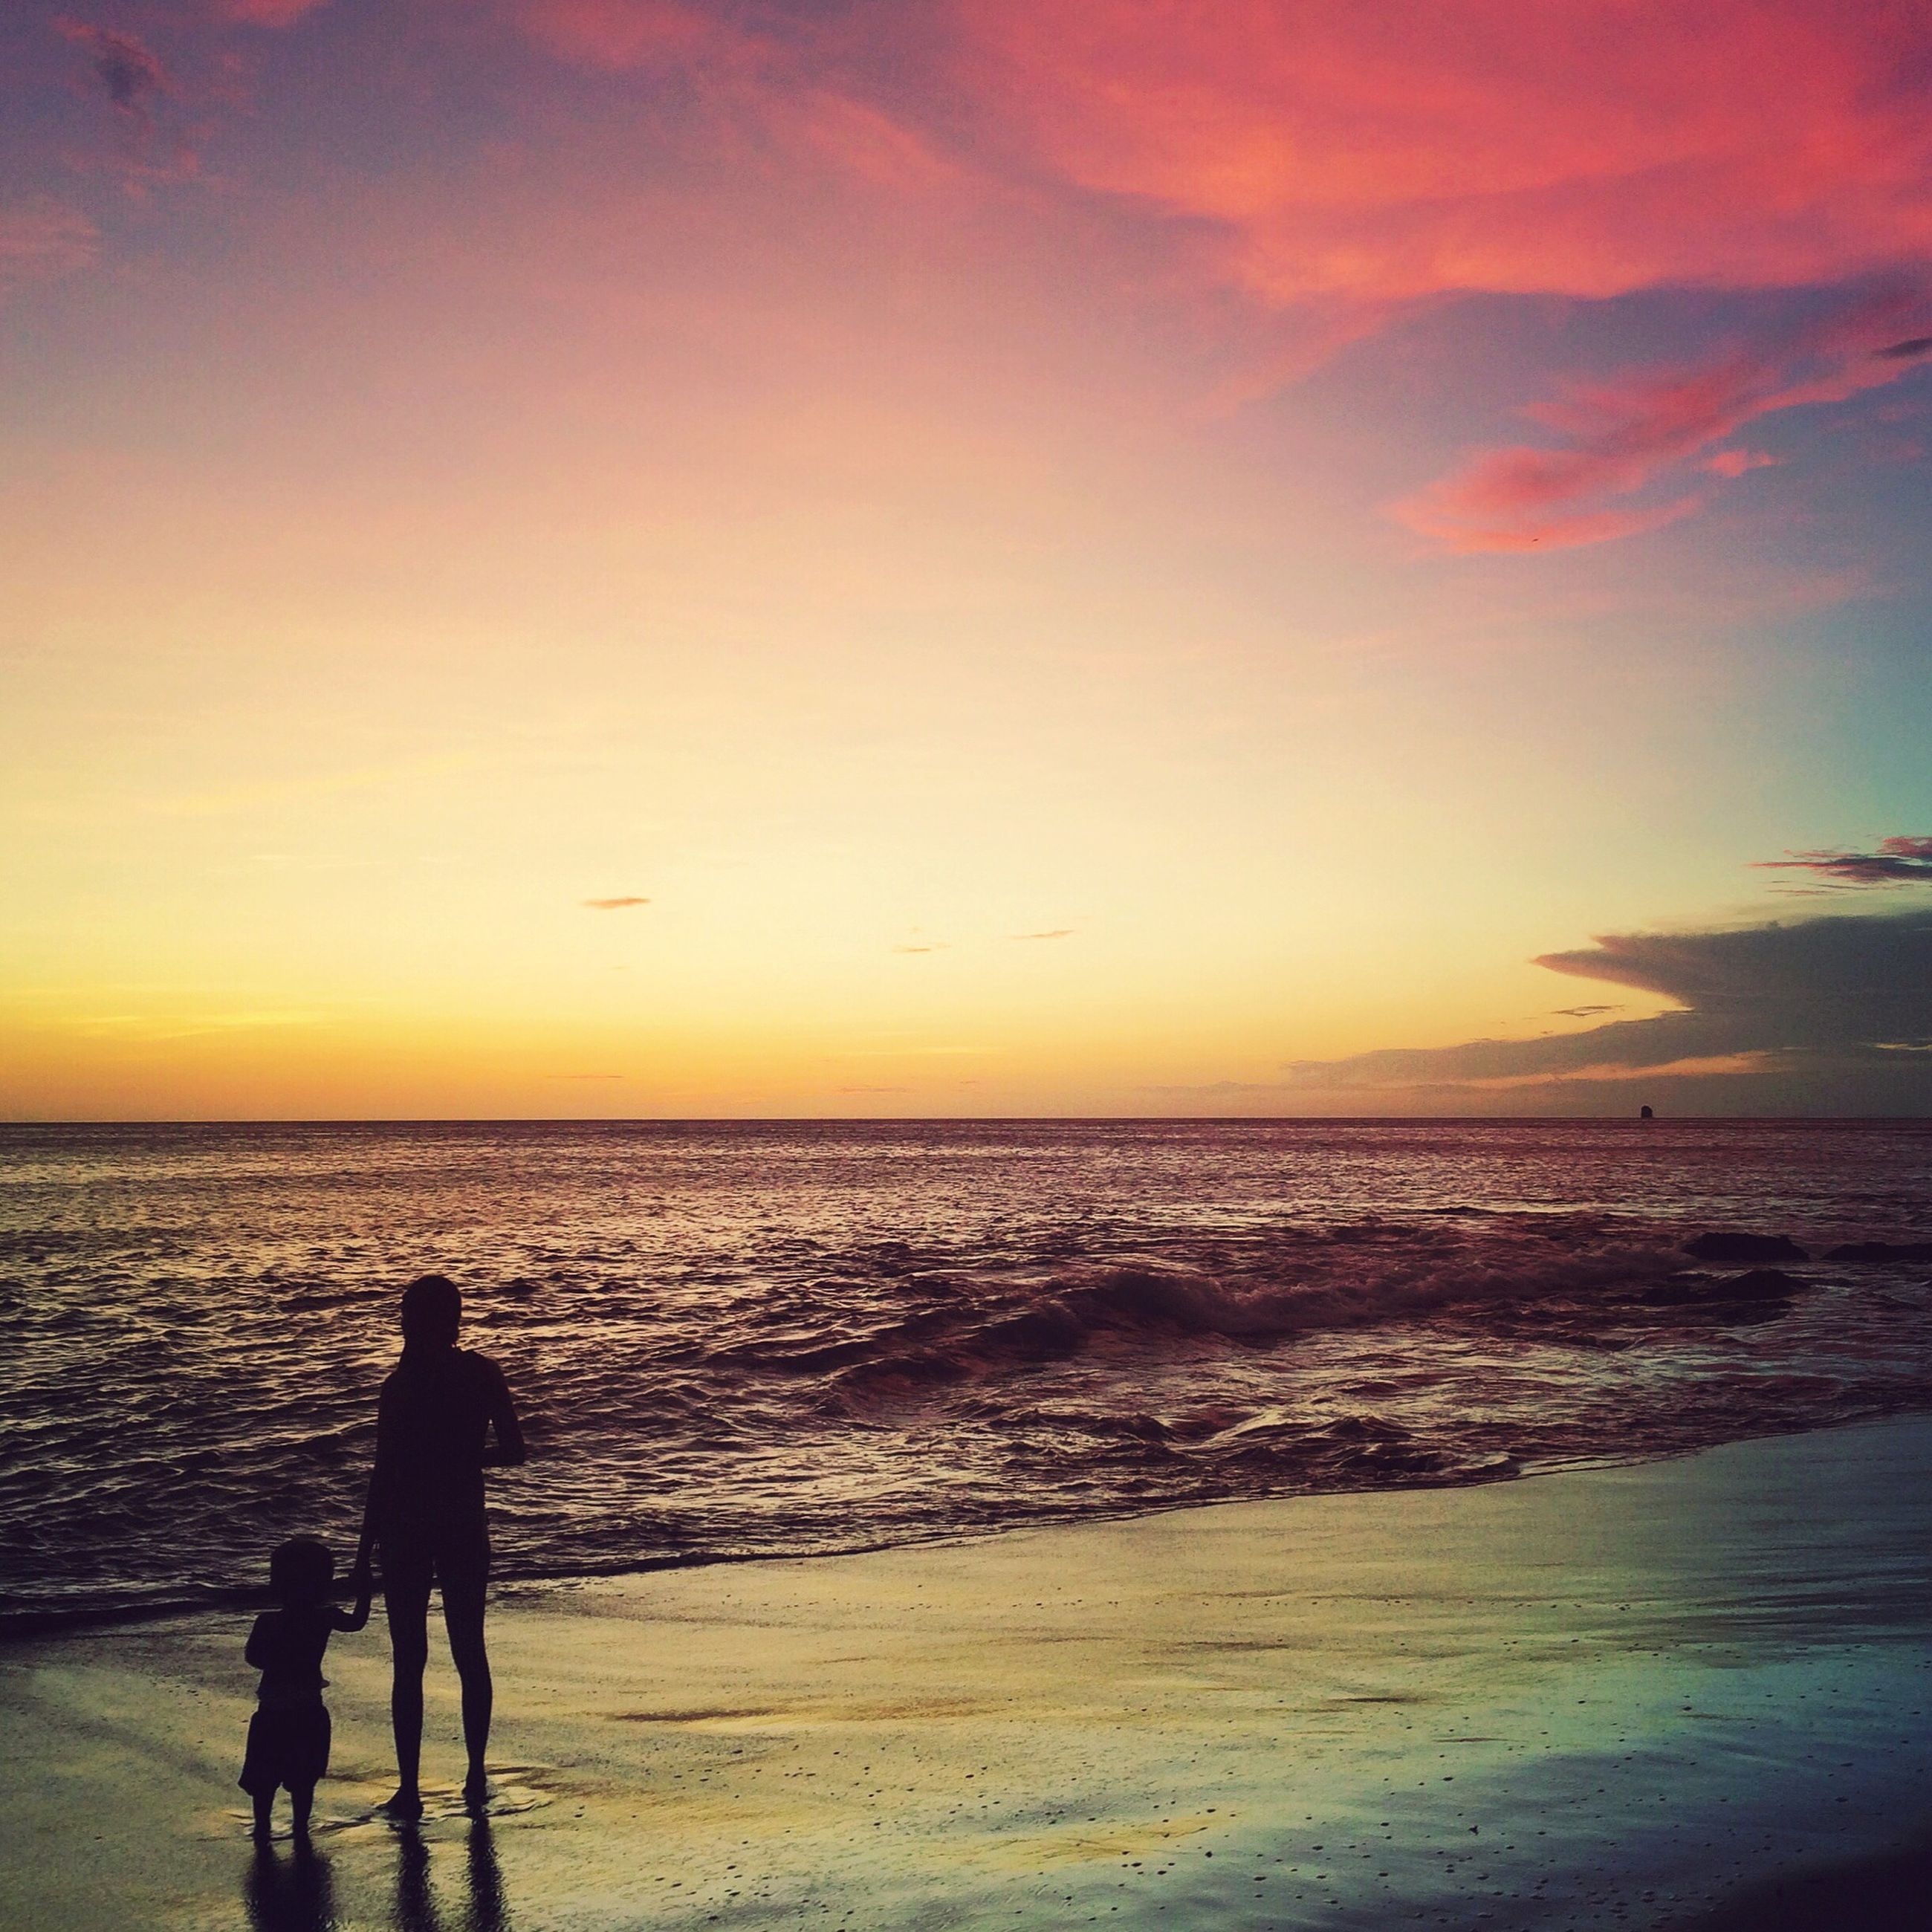 sea, horizon over water, sunset, water, silhouette, beach, leisure activity, sky, lifestyles, scenics, shore, beauty in nature, men, tranquil scene, tranquility, nature, idyllic, standing